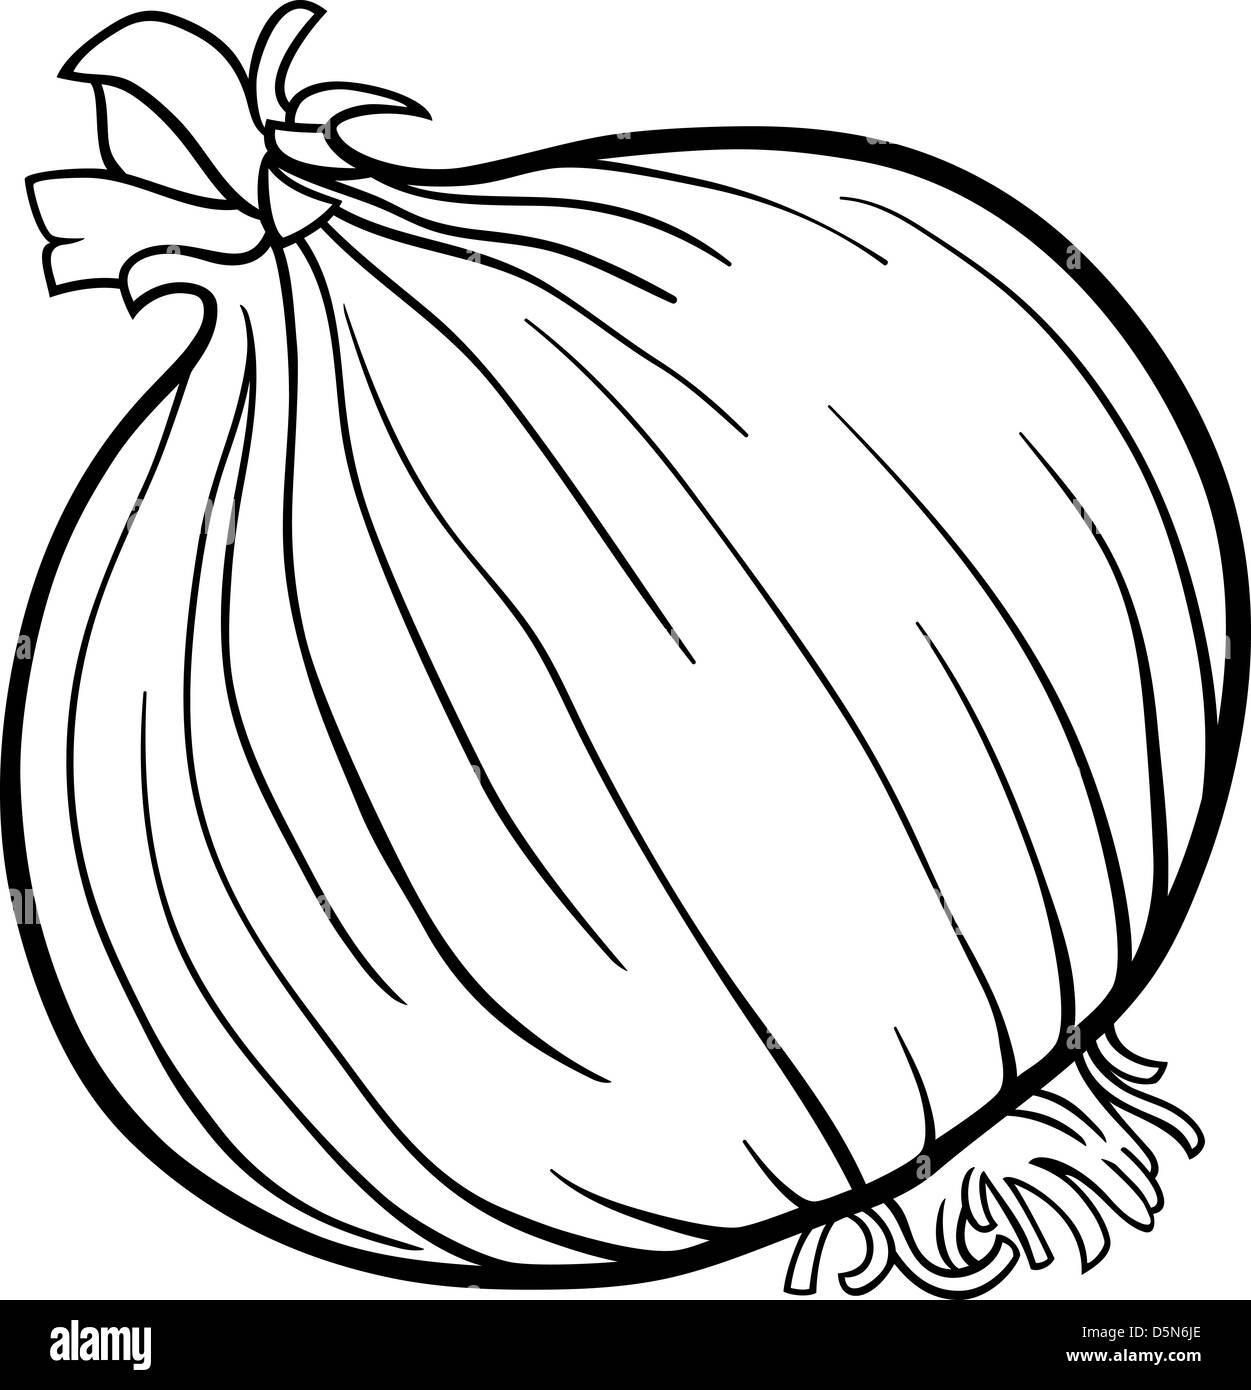 Black and White Cartoon Illustration of Onion Root Vegetable Food ...